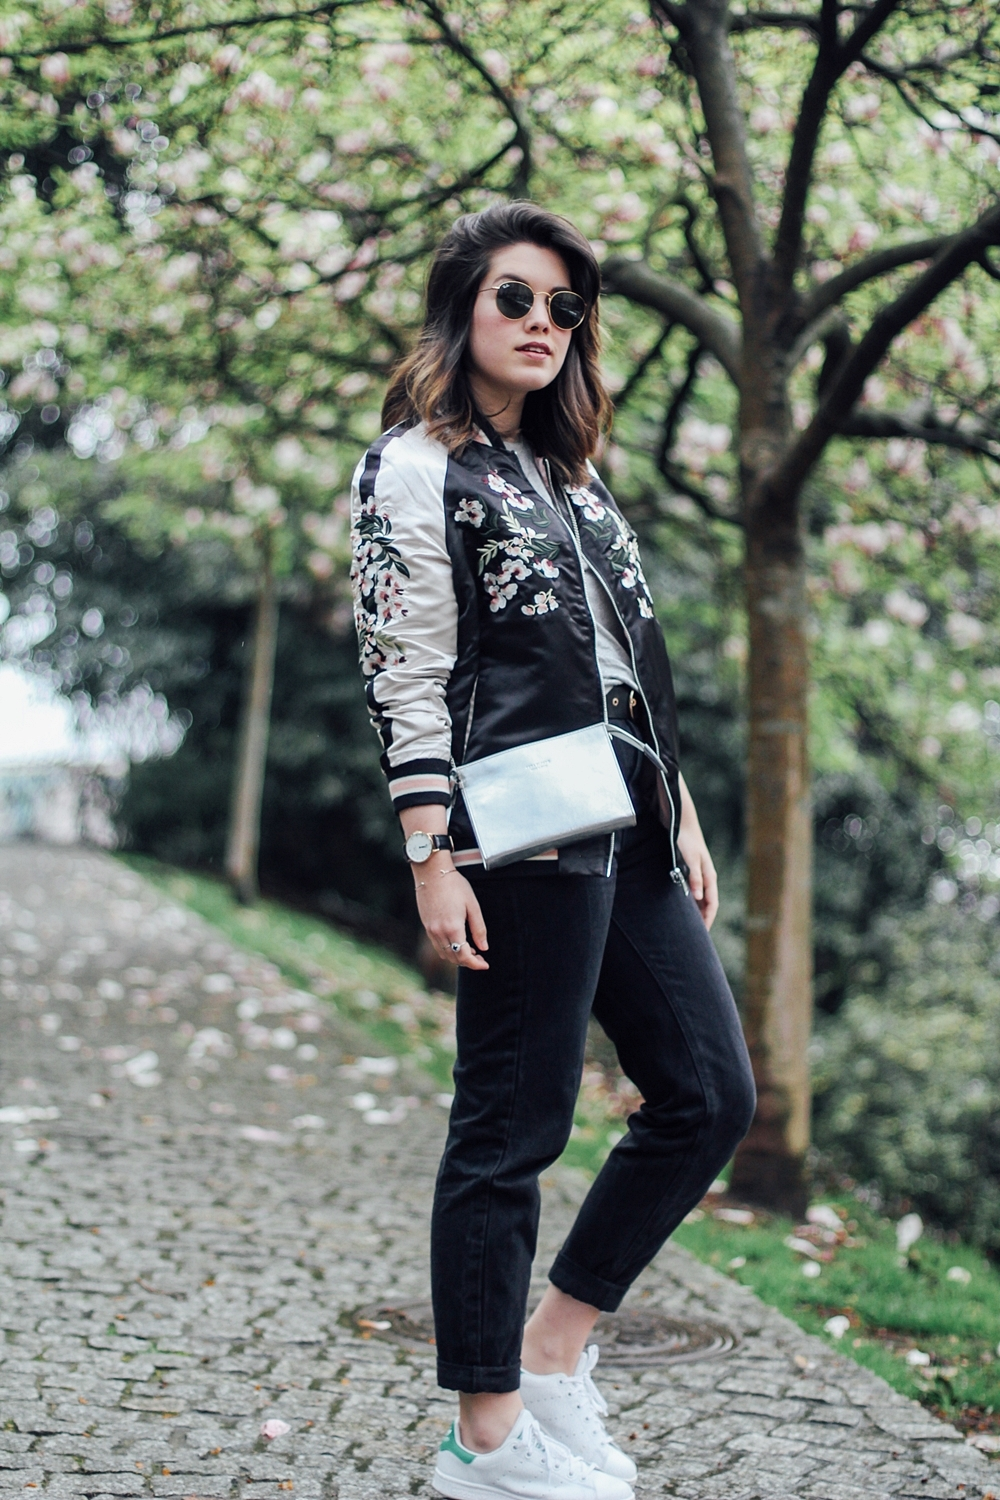 Reversible bomber jacket with embroidery detail with stan smith adidas and mom jeans how to wear